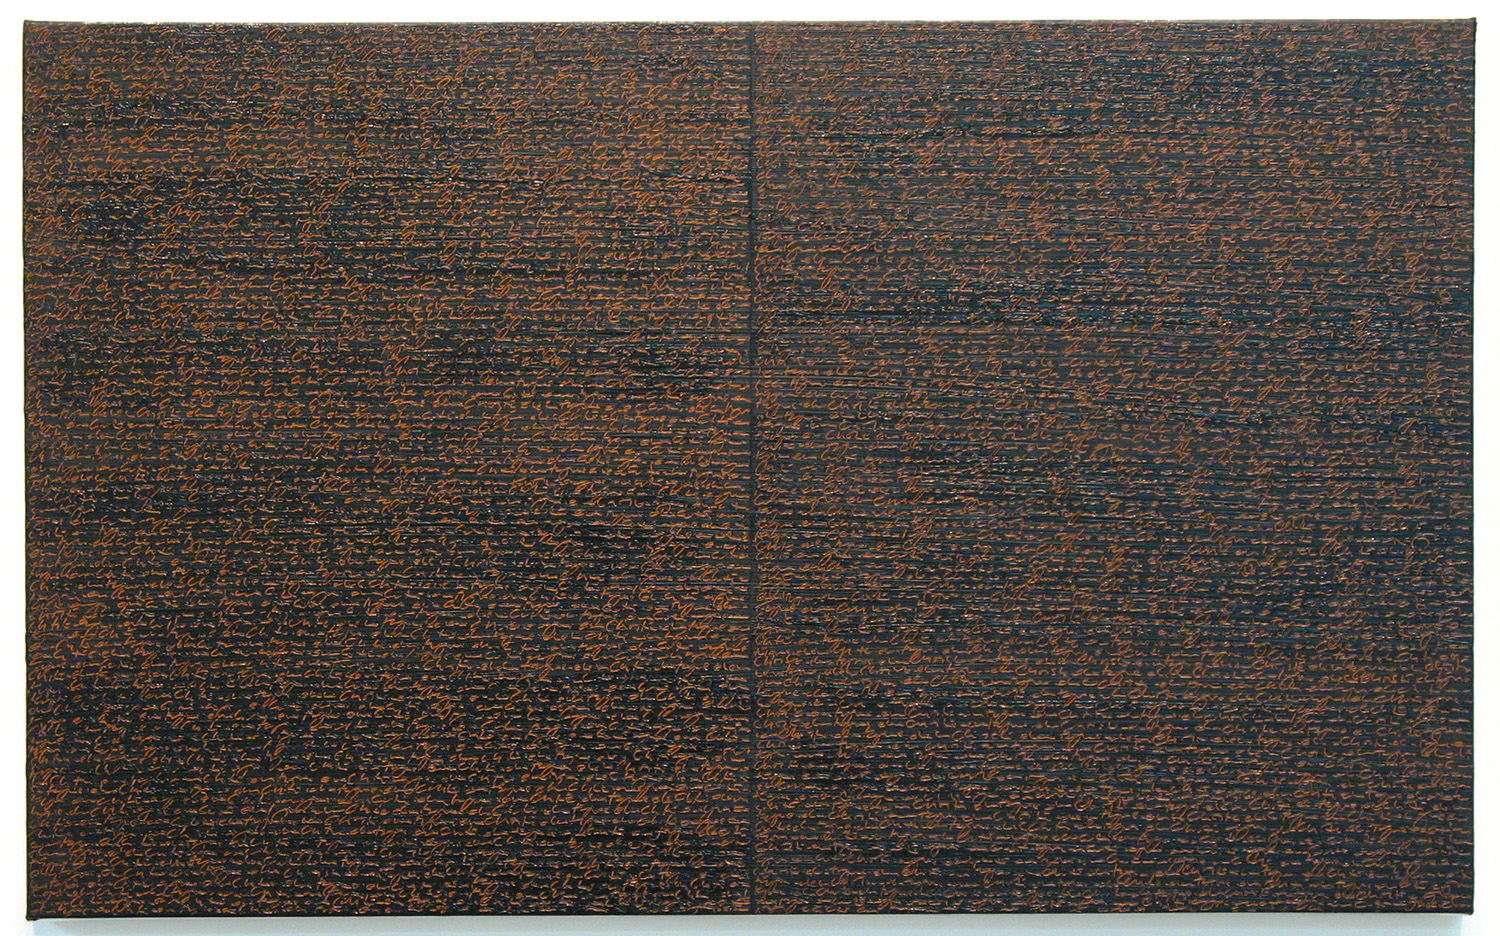 Open Book -orange-brown dark-<br>oil and amber on canvas over panel, 37 x 60 cm, 2008